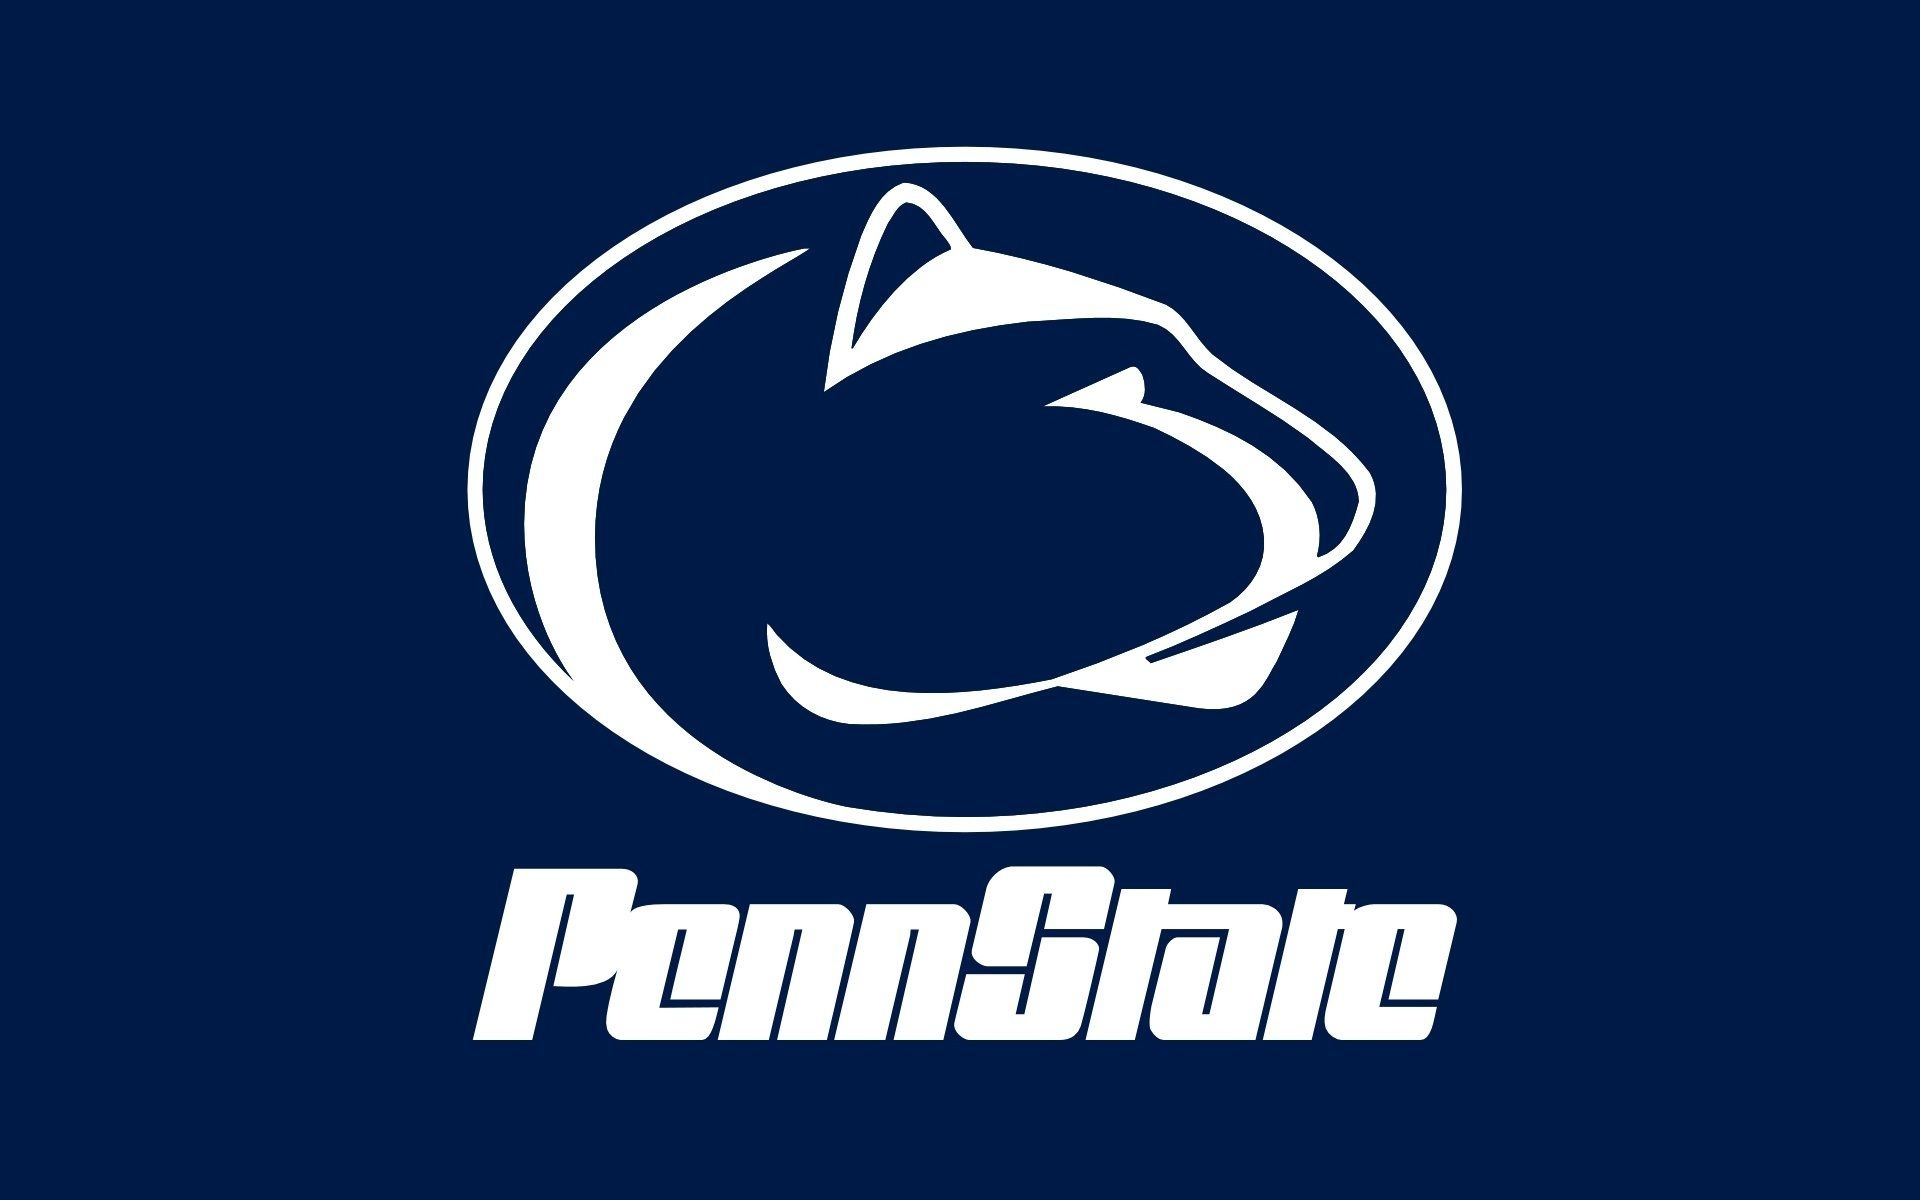 penn state nittany lions wallpapers - wallpaper cave